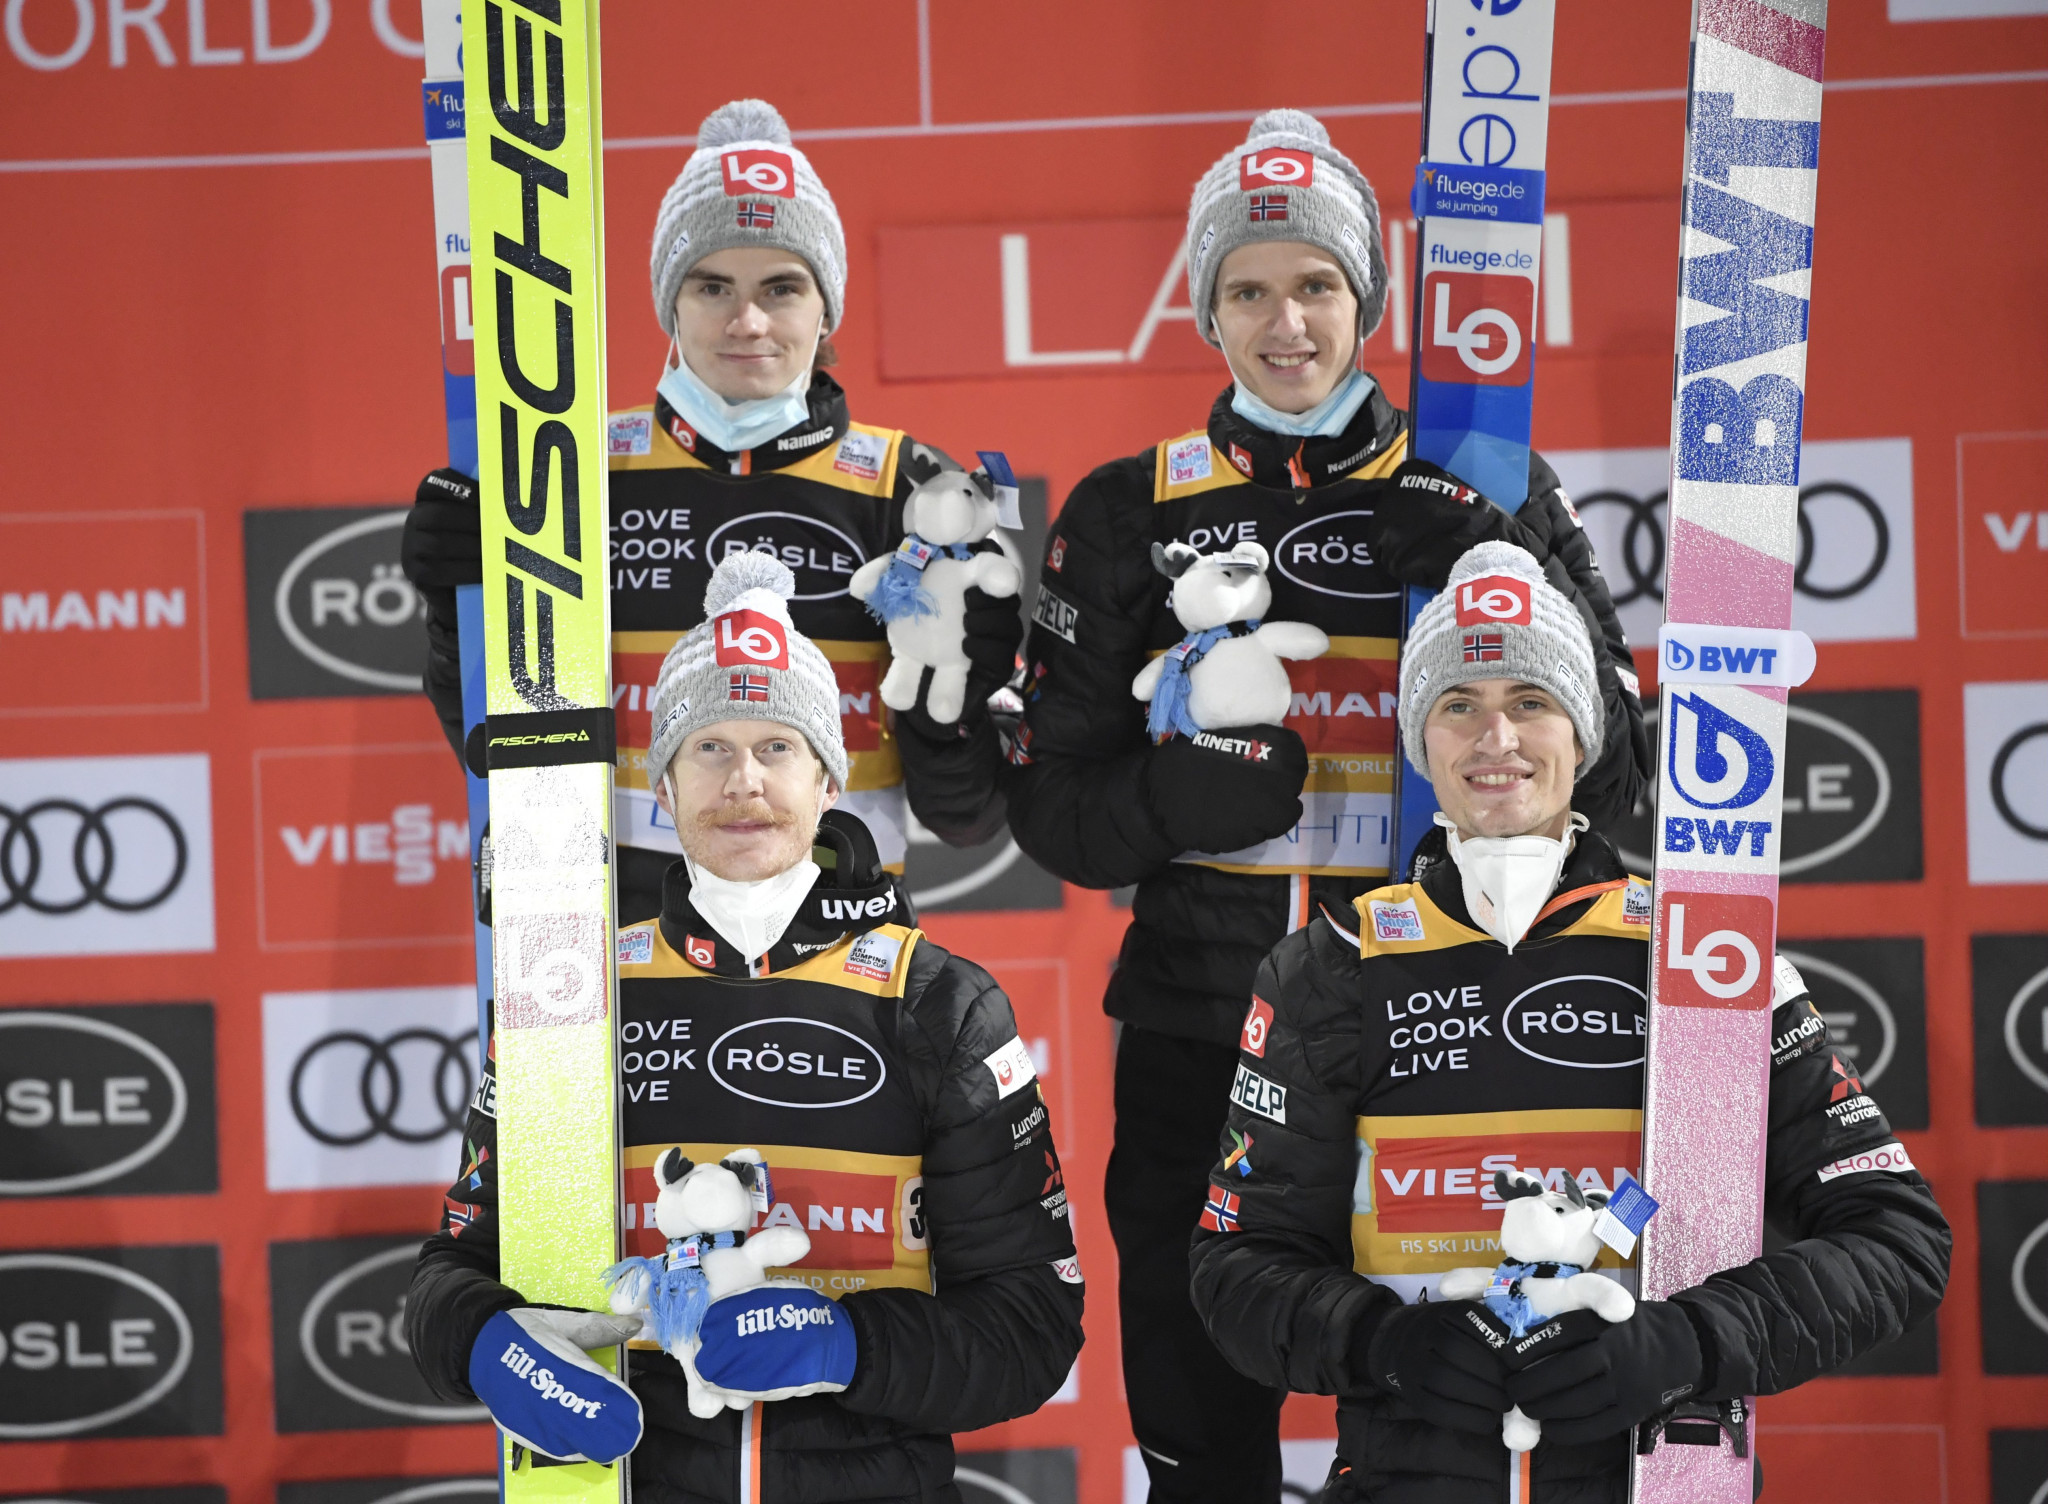 Norway victorious in team contest at Lahti Ski Jumping World Cup